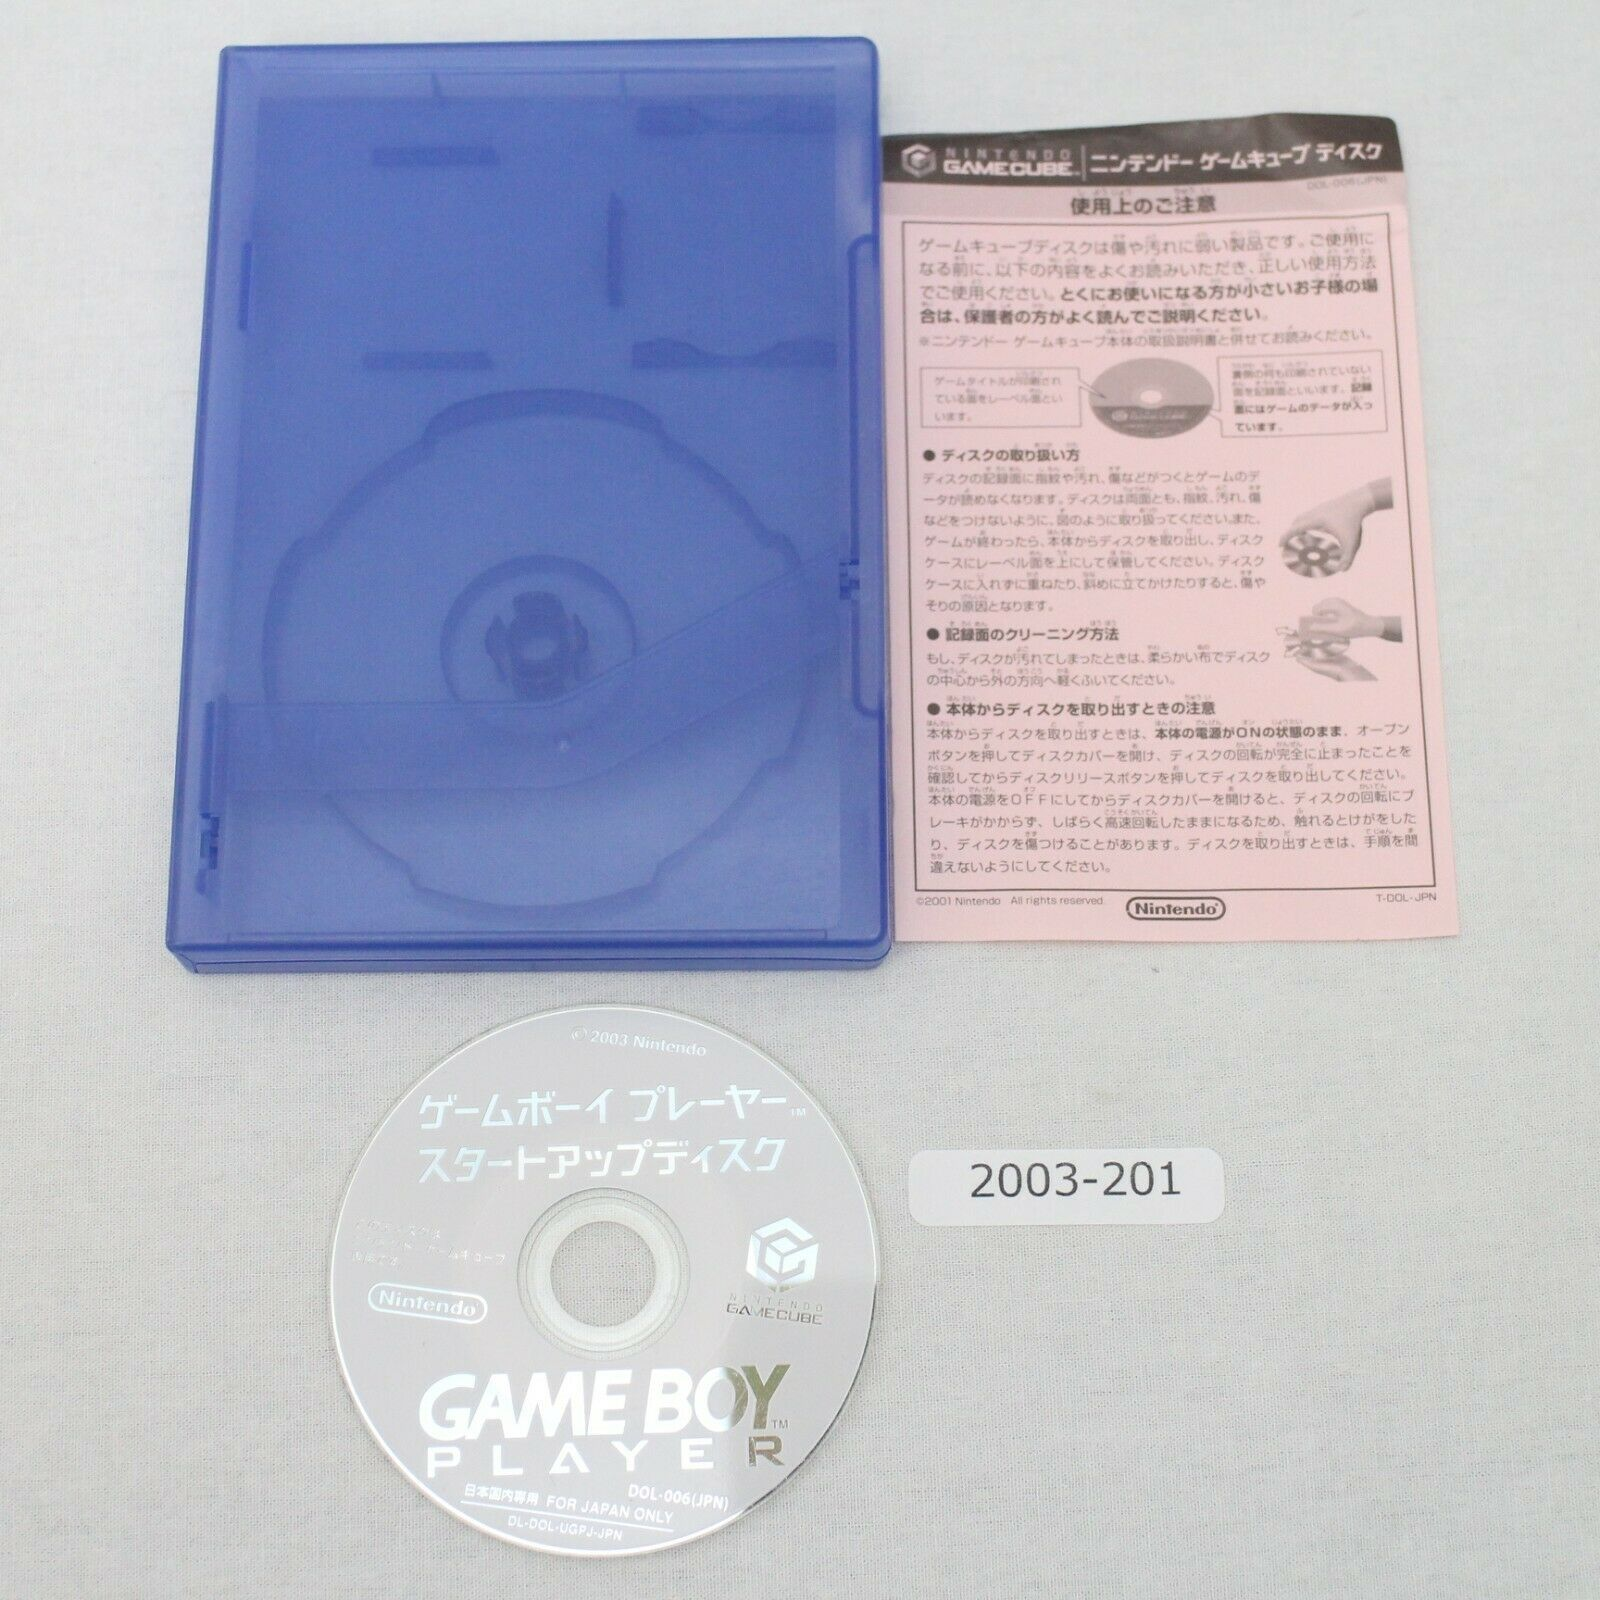 Primary image for Gamecube Start Up disk Boot DOL-006(JPN) working Nintendo Japan 2003-201